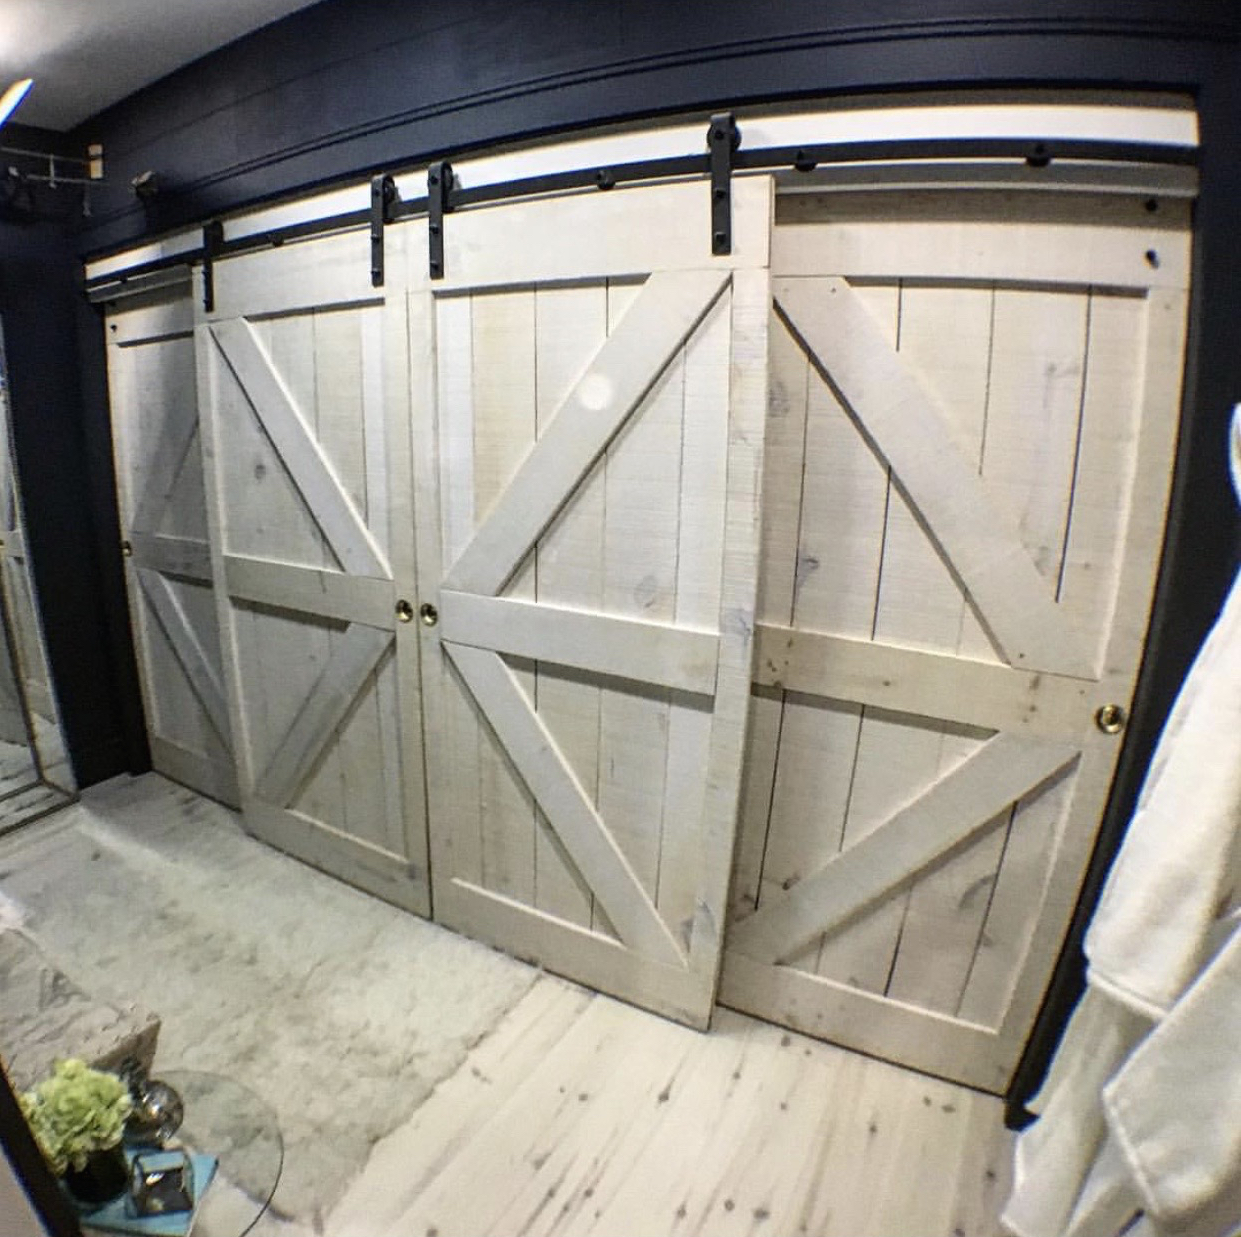 Colin Hunter's labour of love, these barn door inspired sliding doors, add such a chic and authentic element to the master closet suite! Perfectly on trend as well.